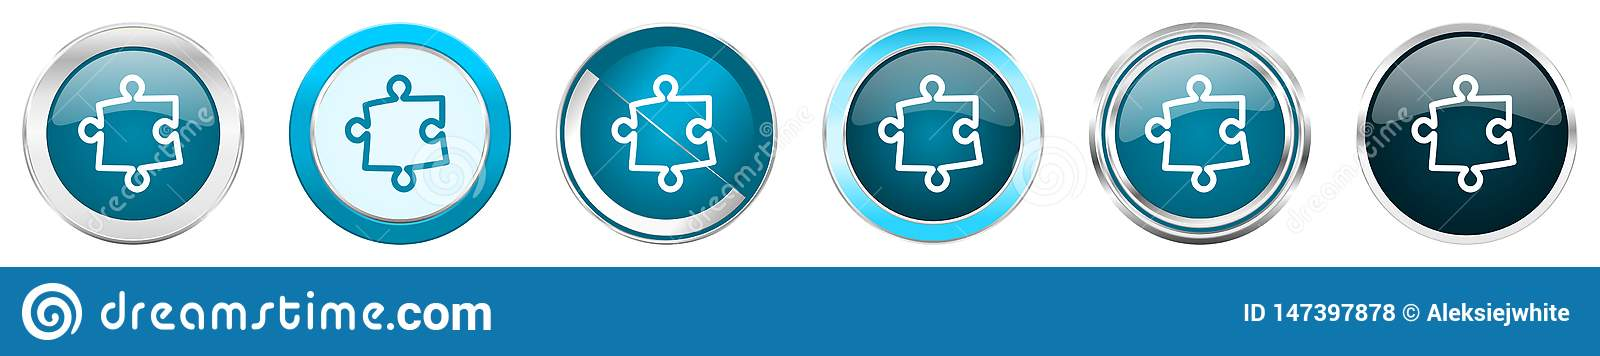 Puzzle silver metallic chrome border icons in 6 options, set of web blue round buttons isolated on white background